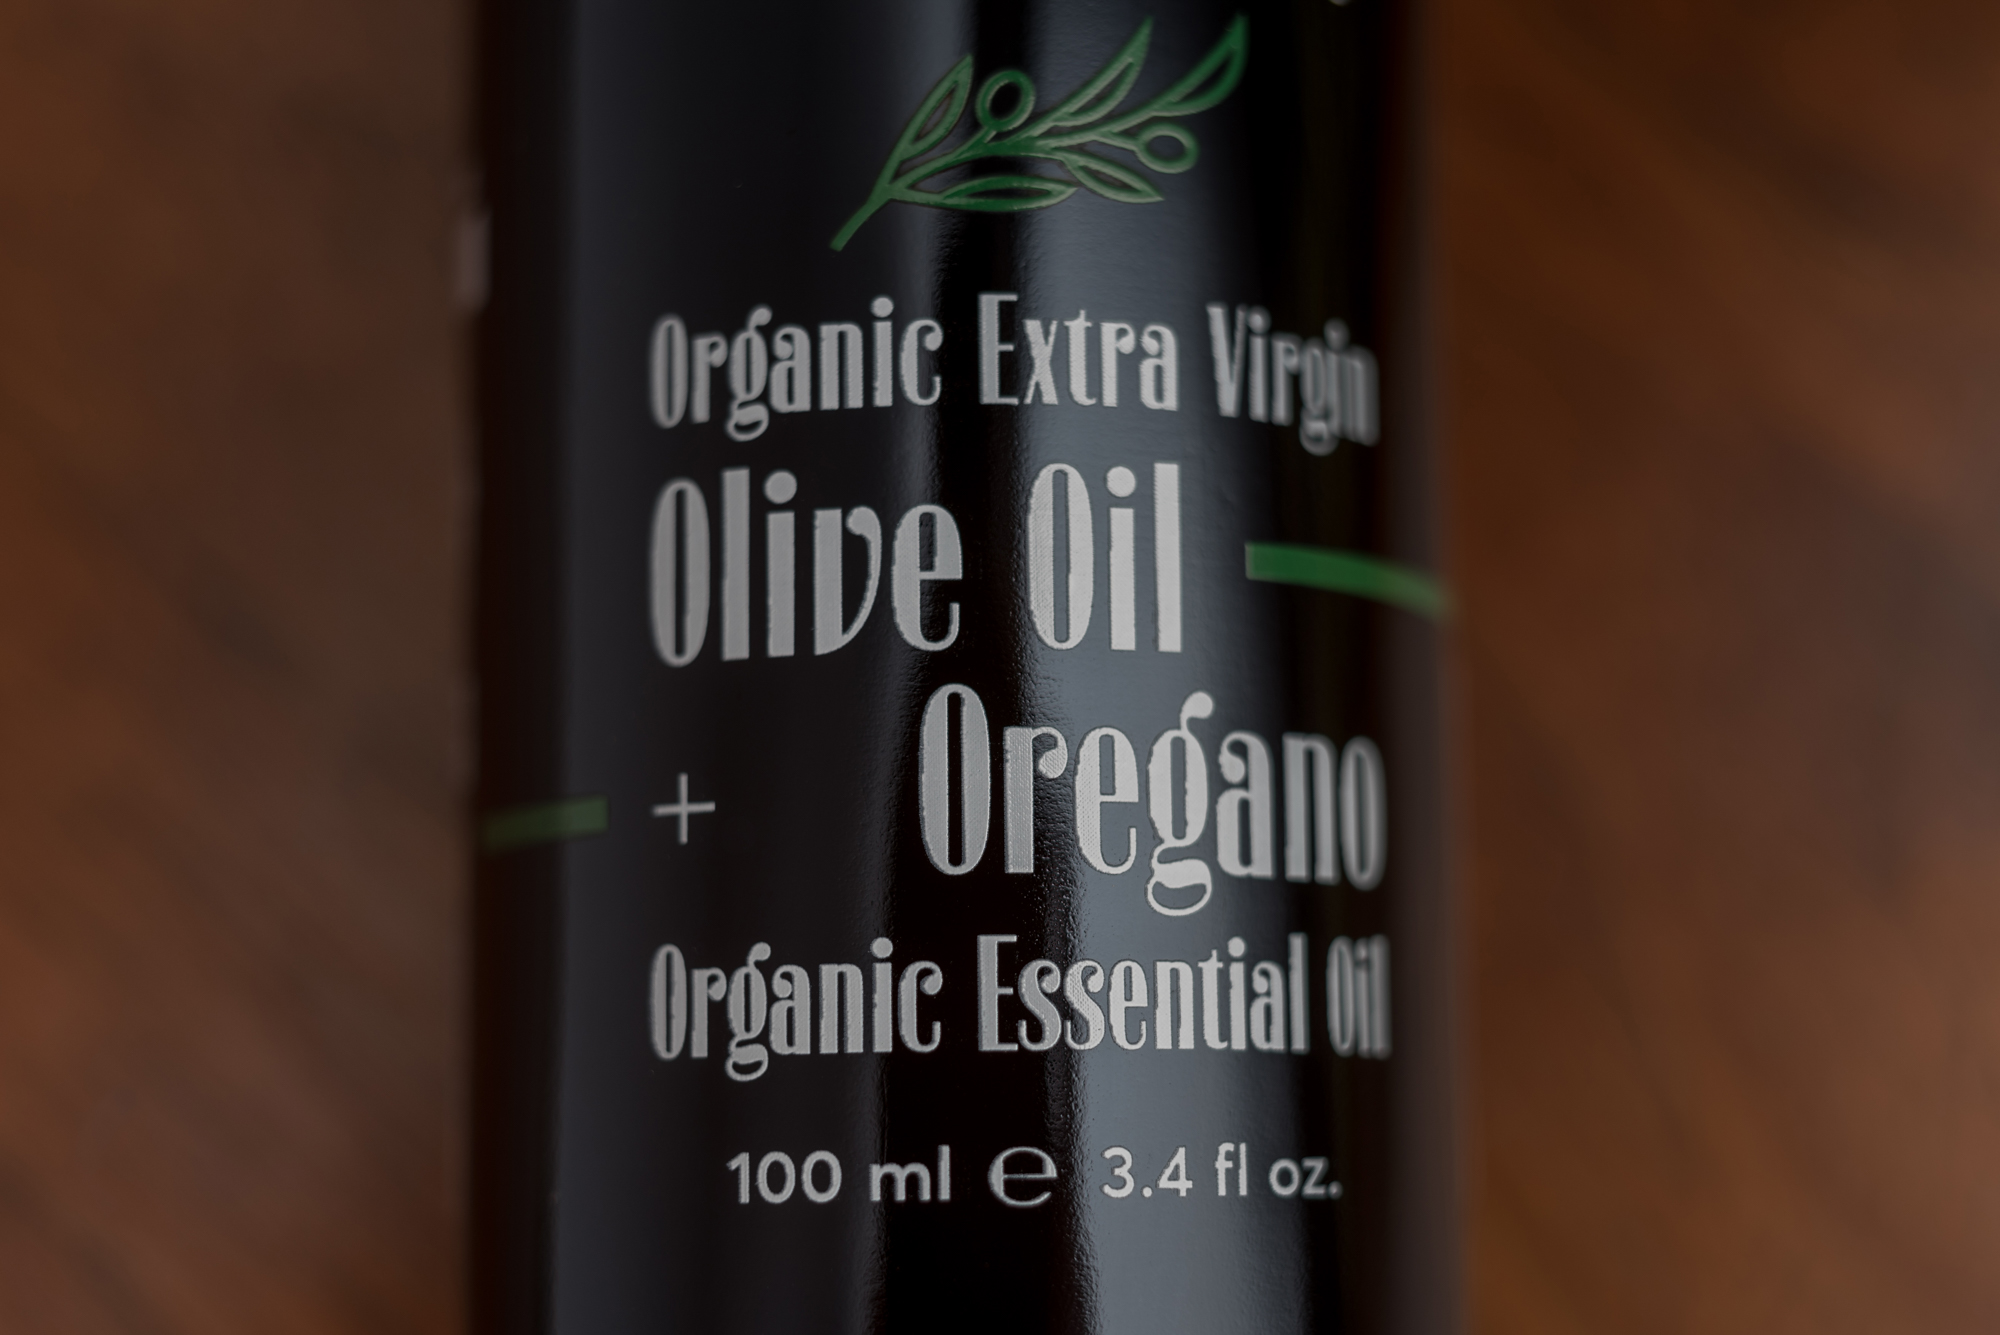 Brand and Packaging Design Organic Extra Virgin Olive Oil and Oregano Essential Oil / World Brand & Packaging Design Society